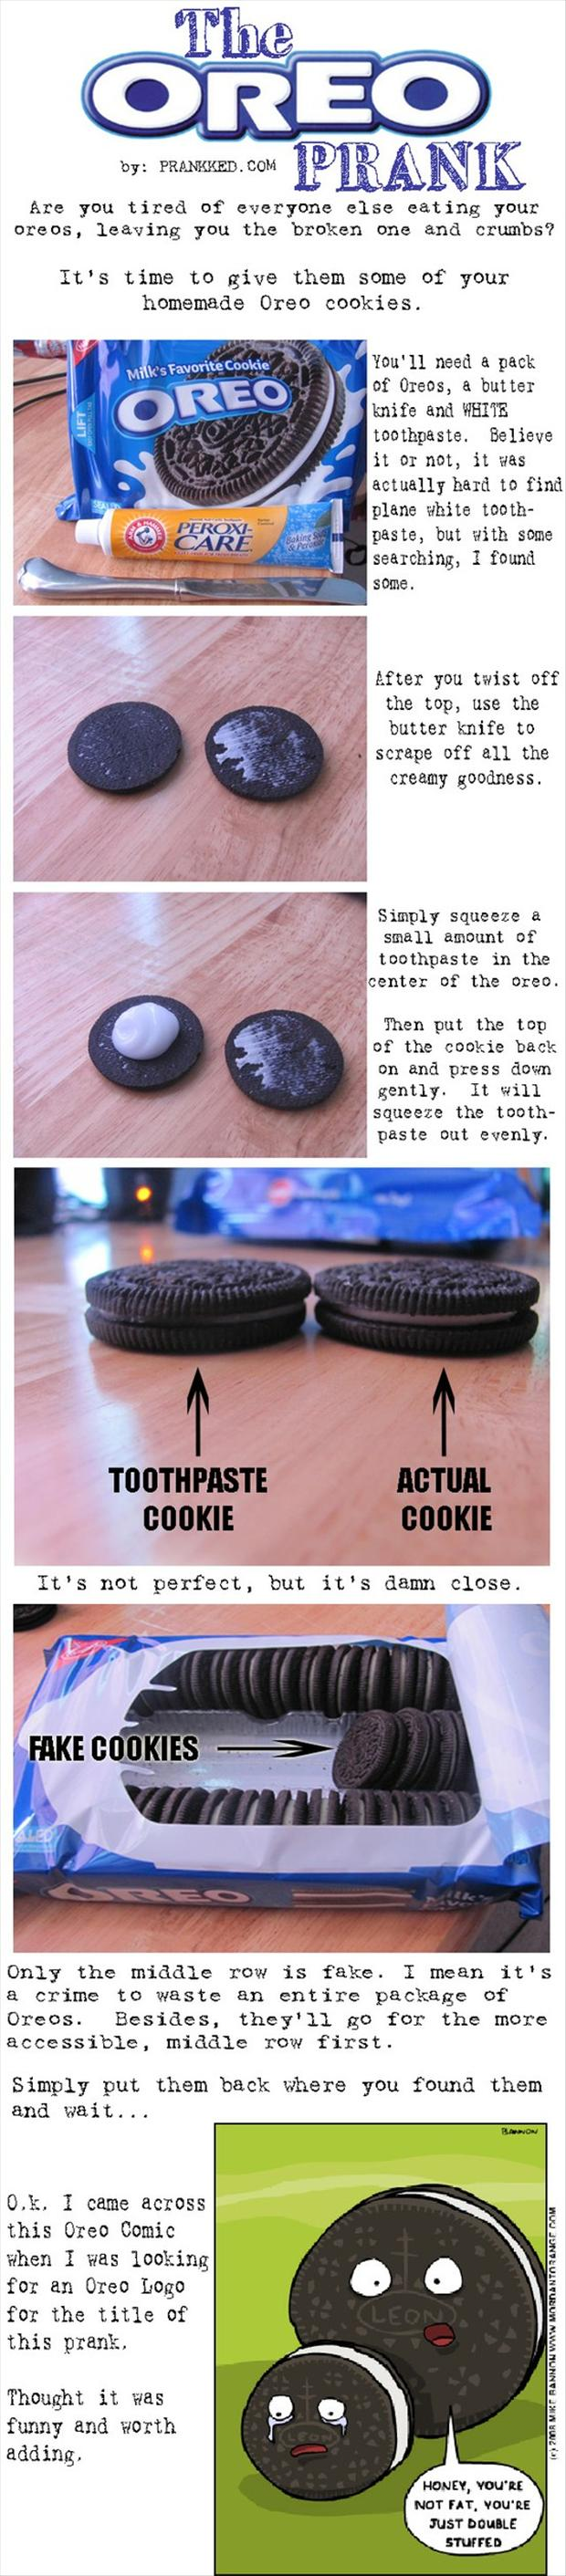 Funny Pictures Of The Day 65 Pics April fools pranks